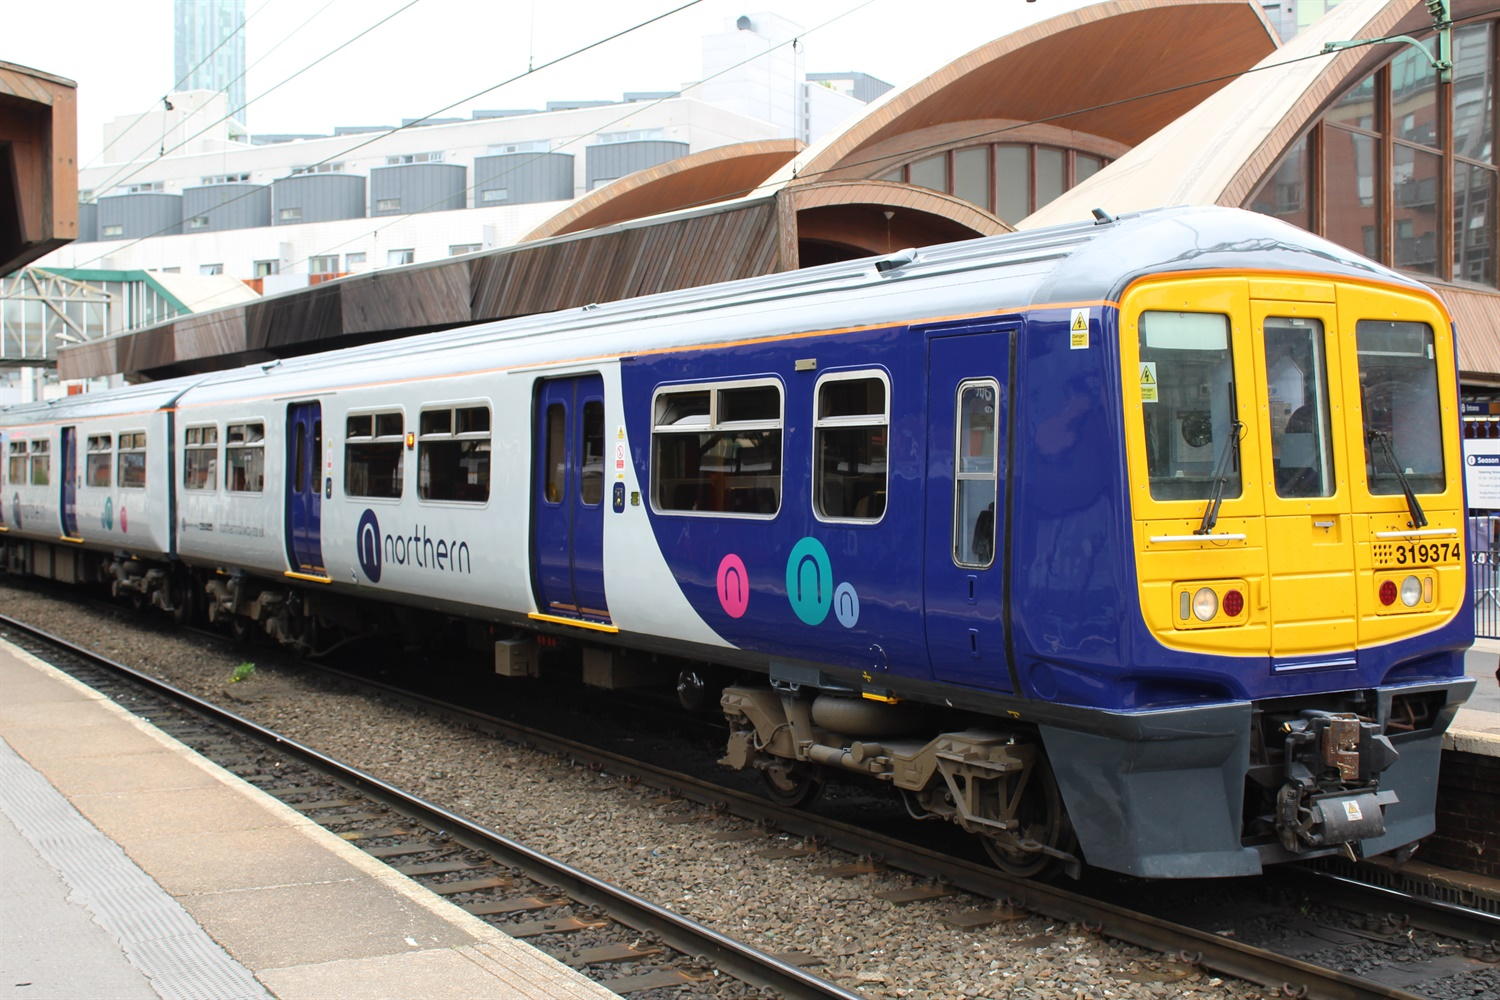 NR and Northern to review failures of recent timetable shake-up ahead of December changes